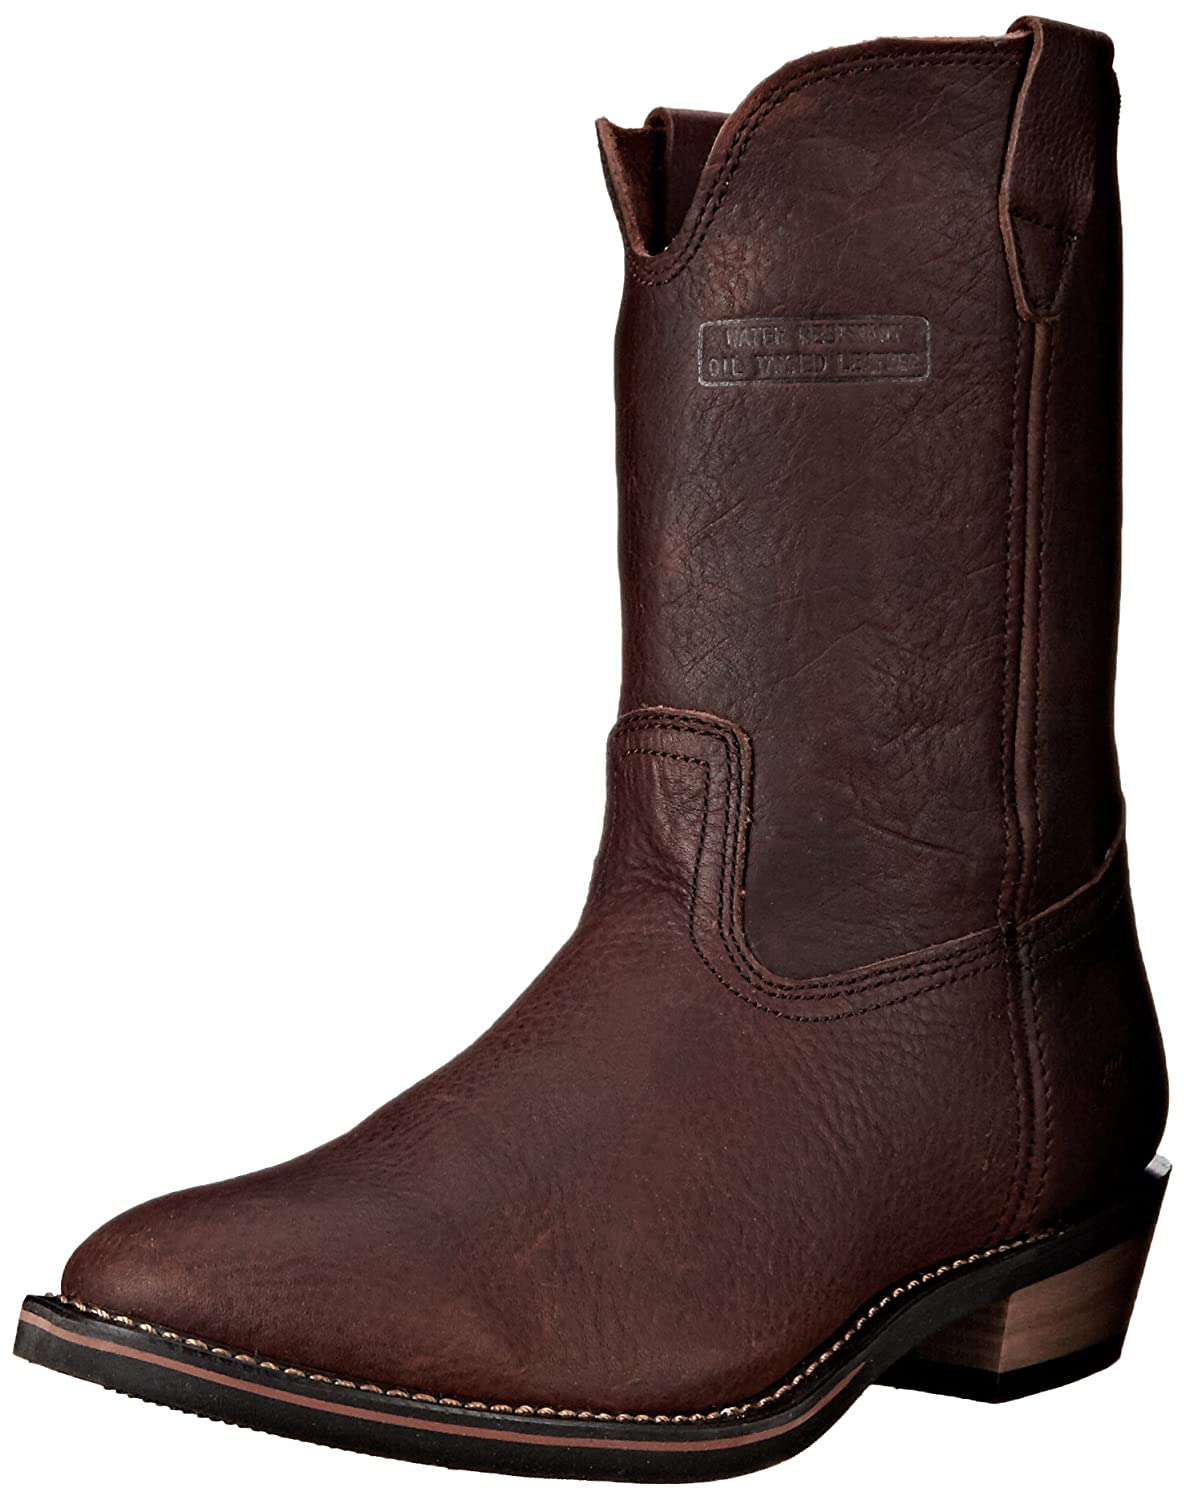 Adtec Men's 12 Inch Ranch Wellington, Reddish, 10.5 W US  B00OUHNN3K